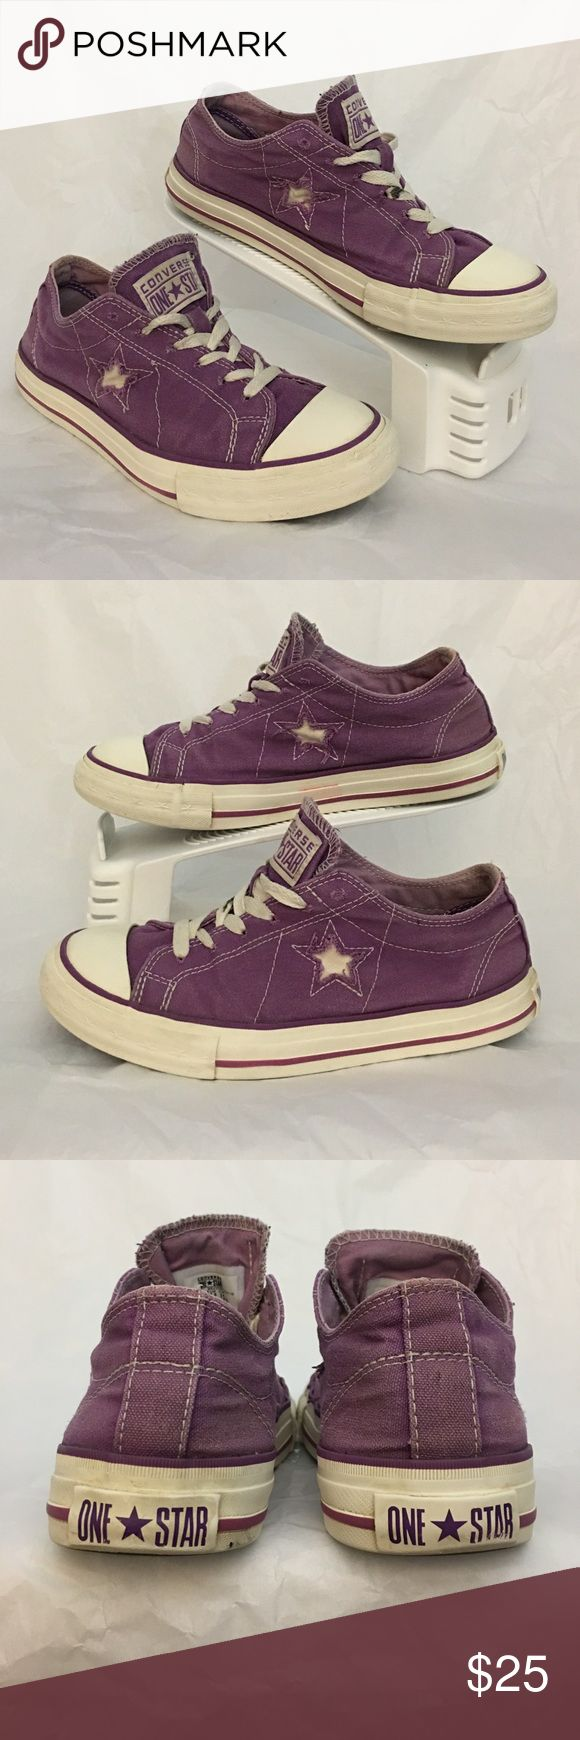 Converse one Star Pre owned in great condition Converse One Star. Fresh out of the washer.  Some US size 7, UK 8, EUR 37.5.  Smoke and pet free house Converse Shoes Sneakers